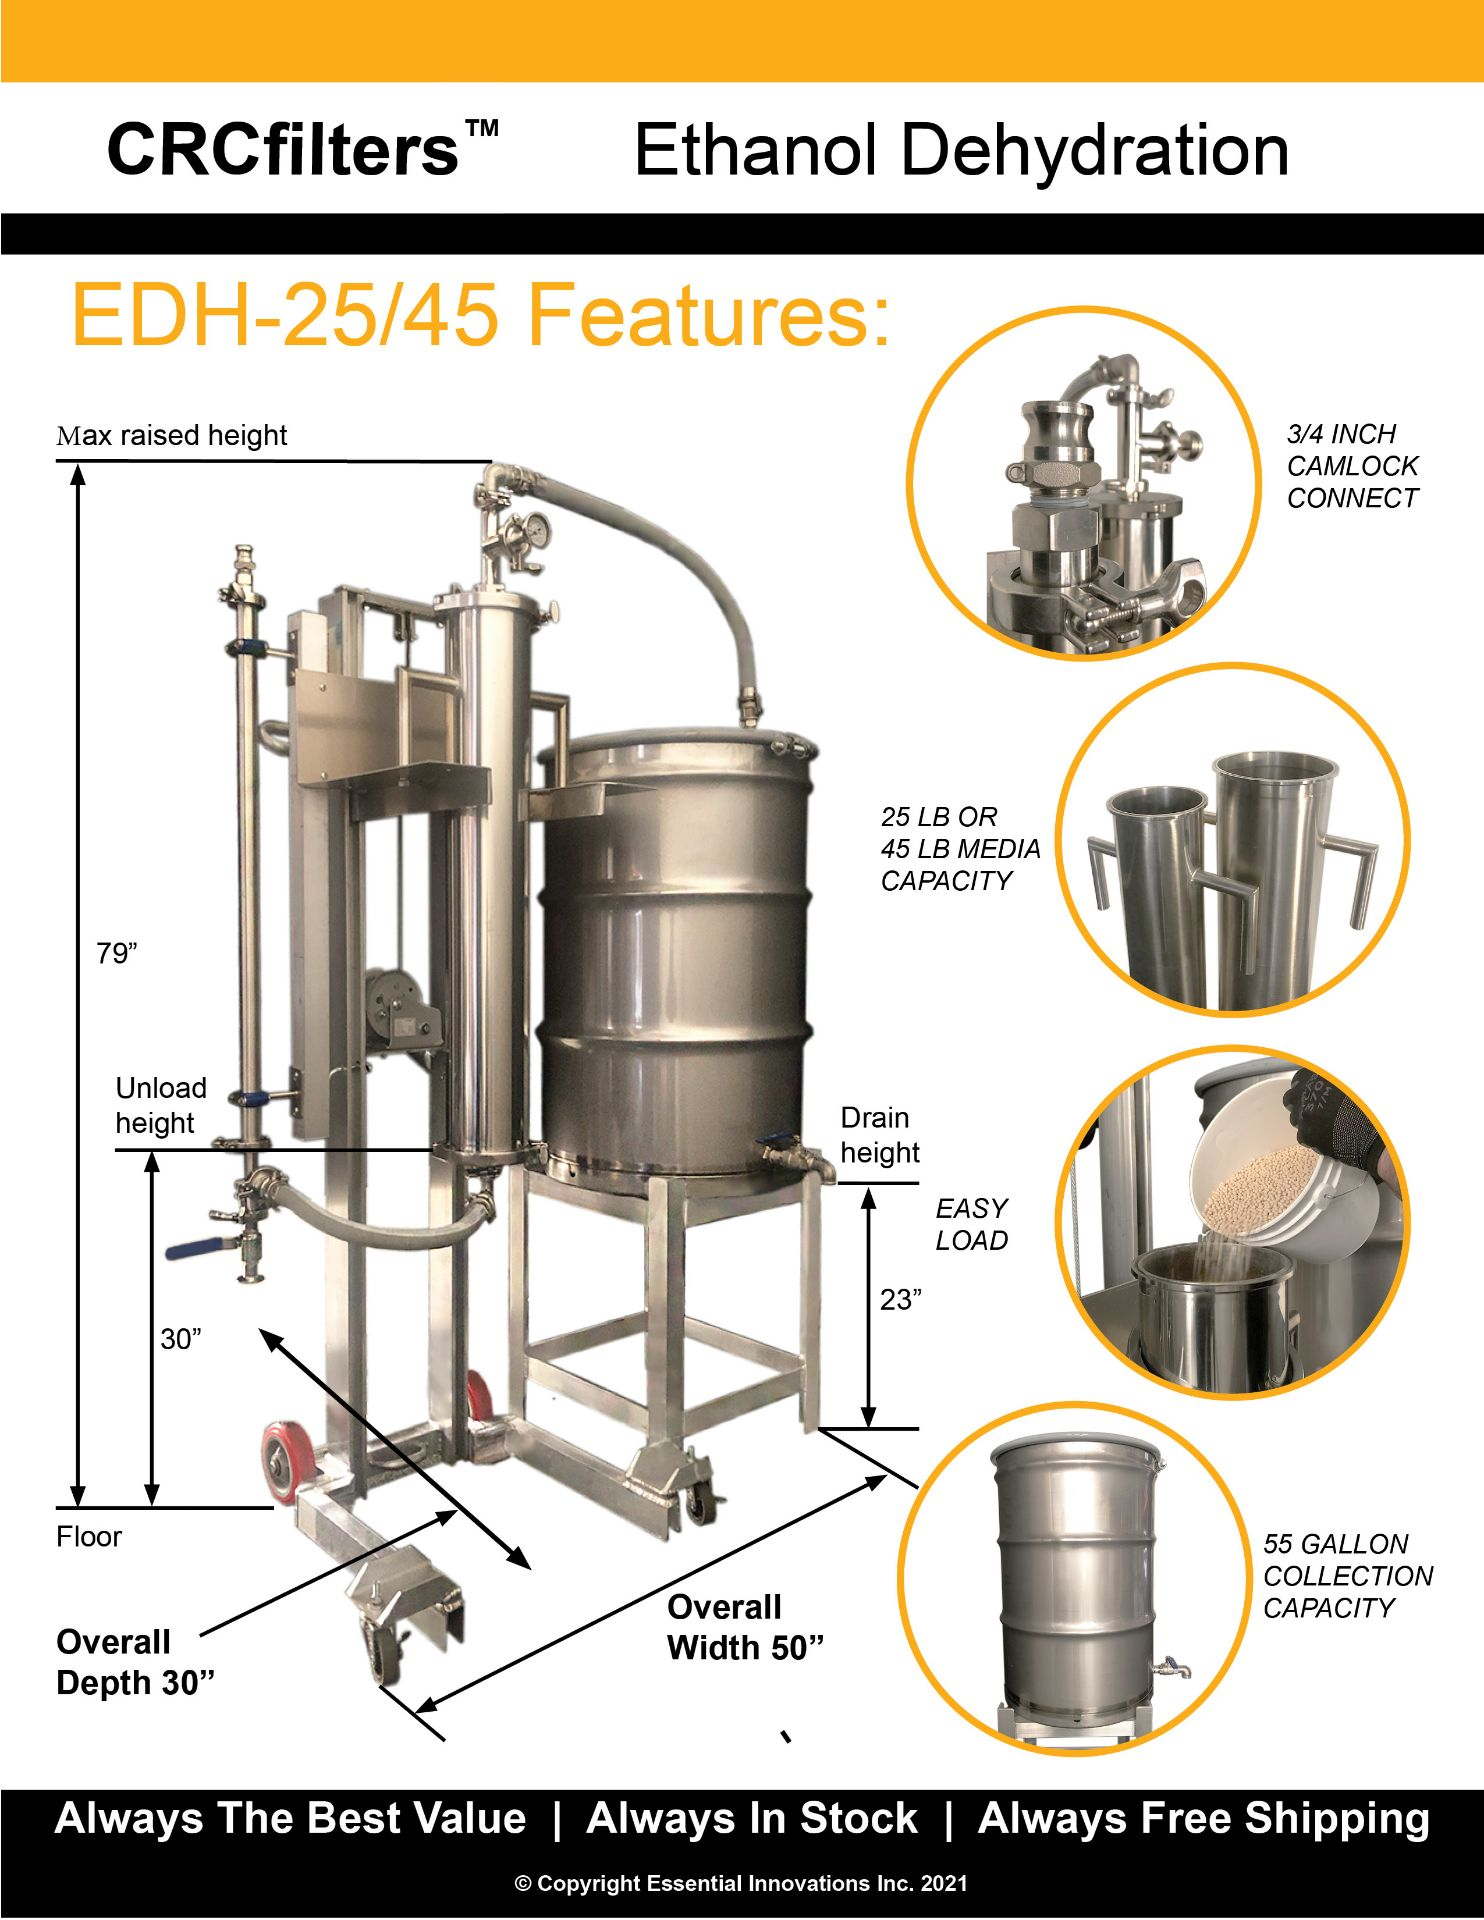 Used/Refurbished-CRCfilters Ethanol Dehydration System EDH-25. 25lb capacity 55 gal collection drum. - Image 4 of 6